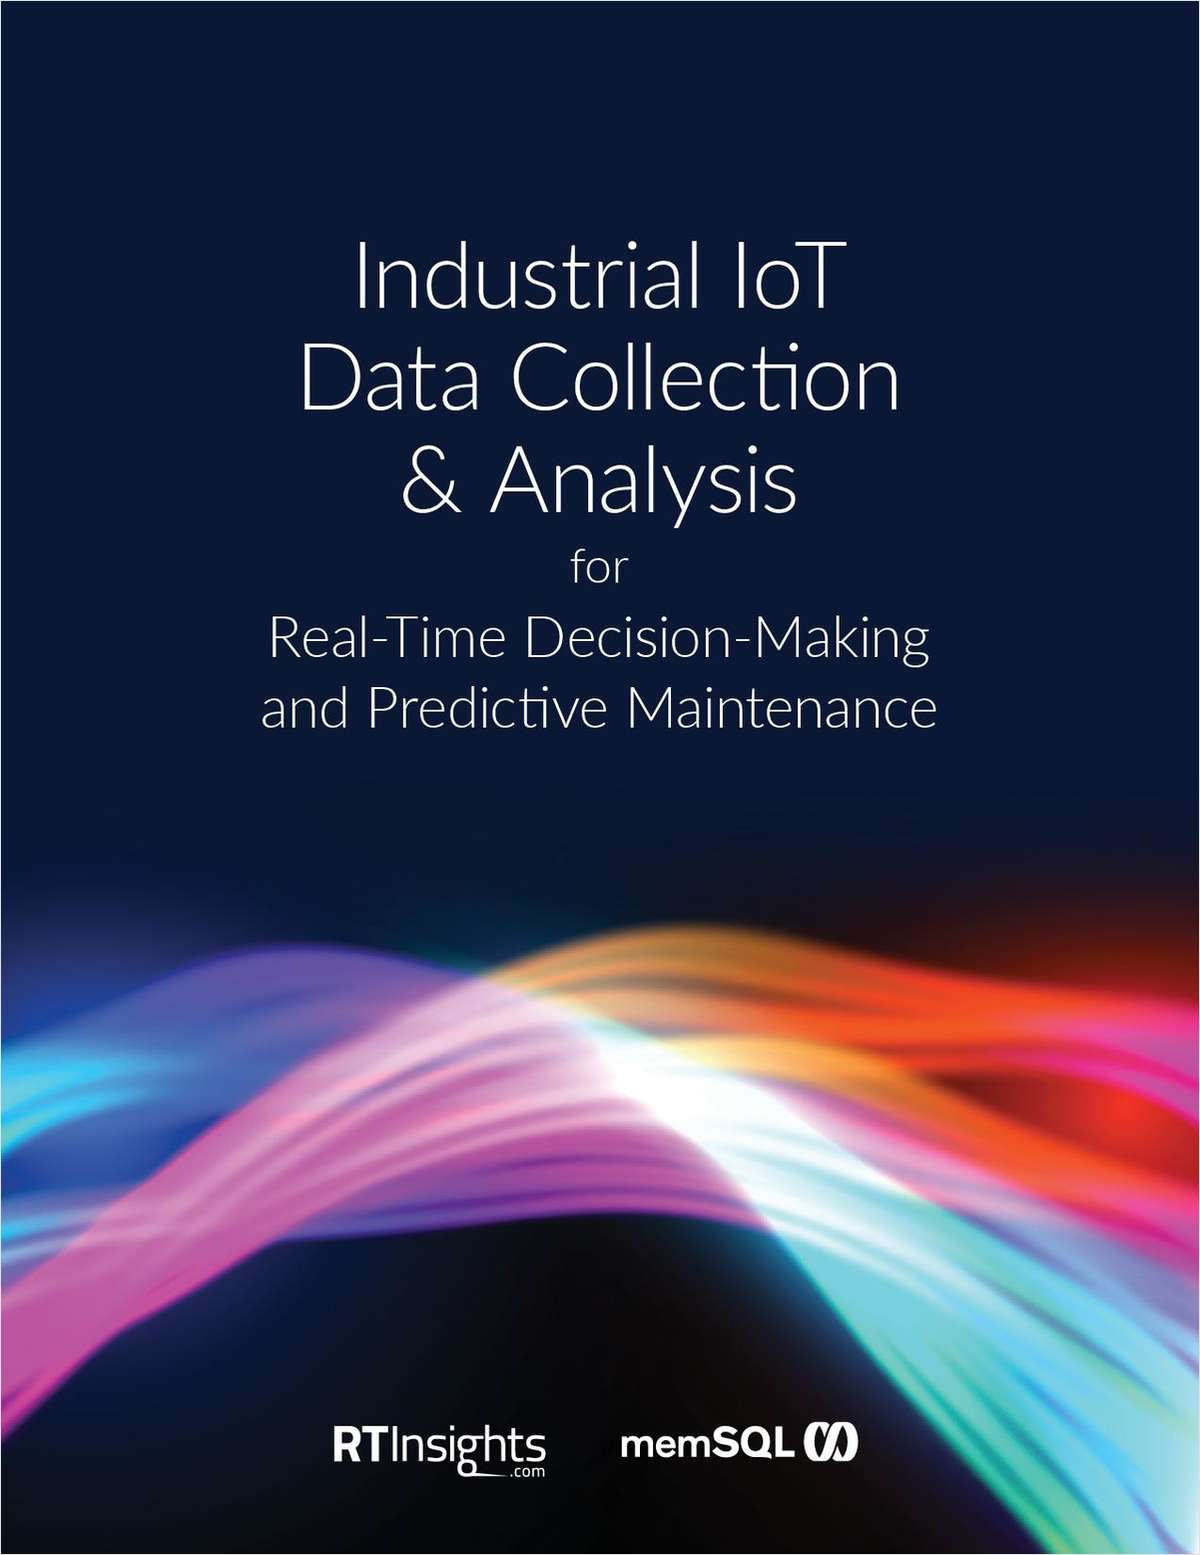 Industrial IoT Data Collection & Analysis for Real-Time Decision-Making and Predictive Maintenance